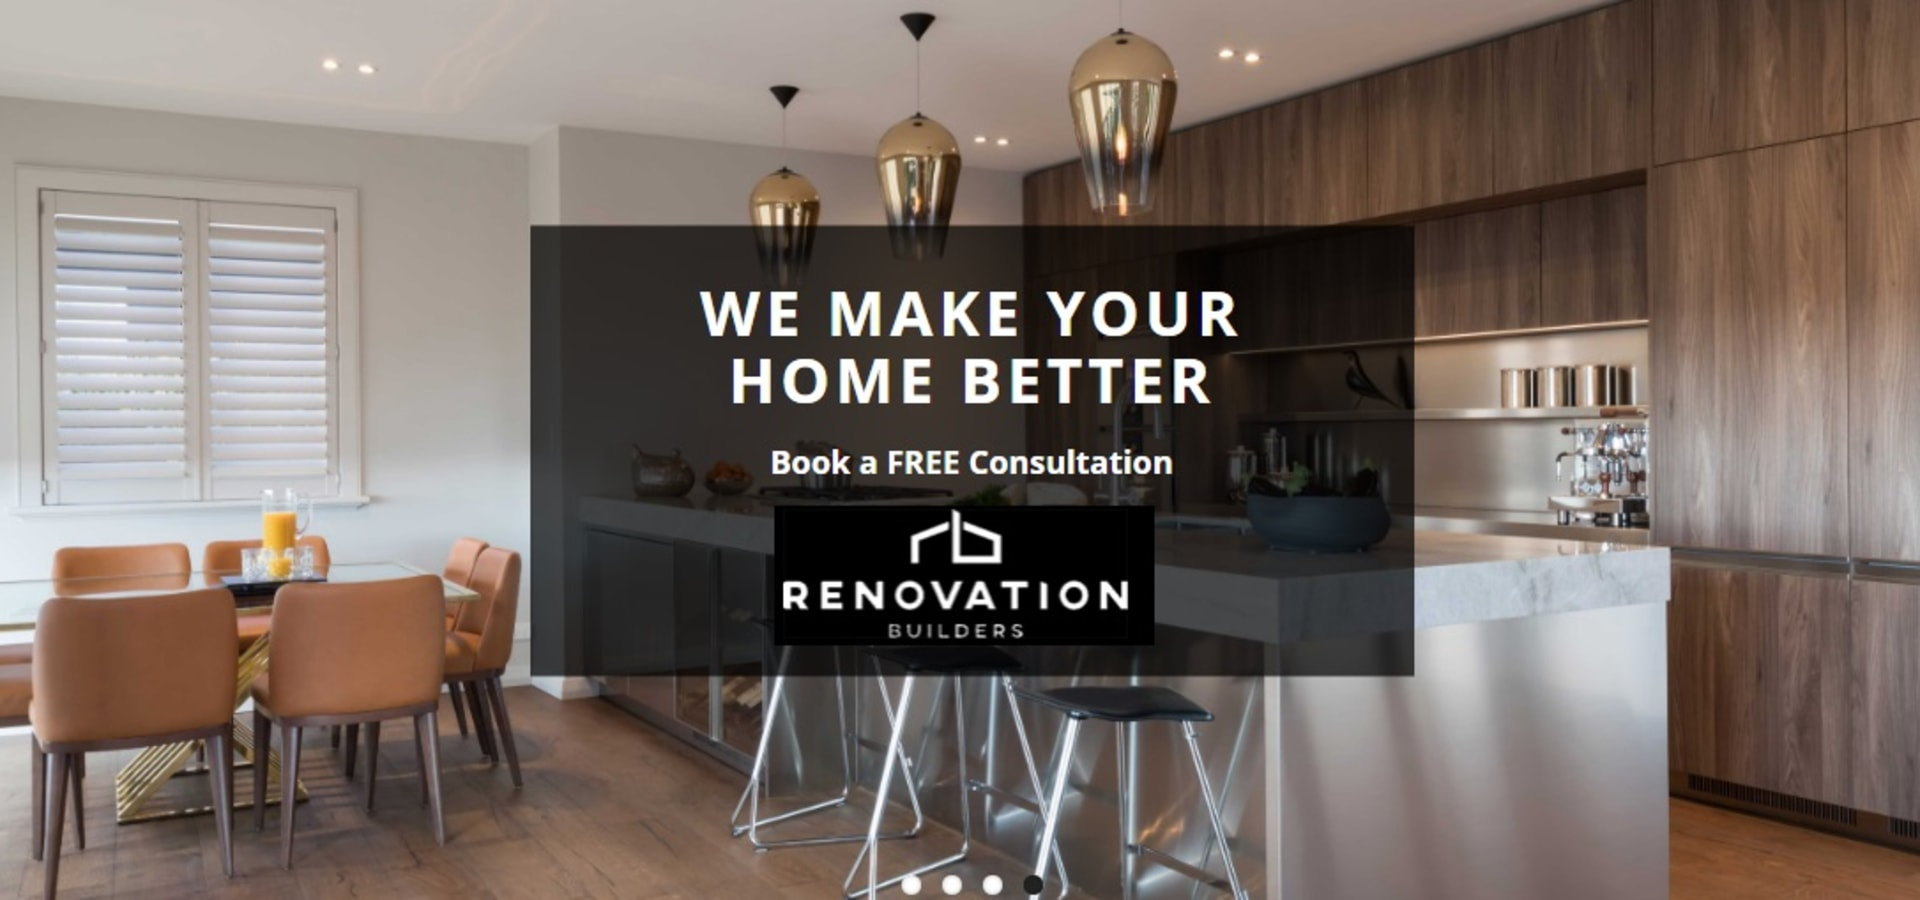 Renovation Builders